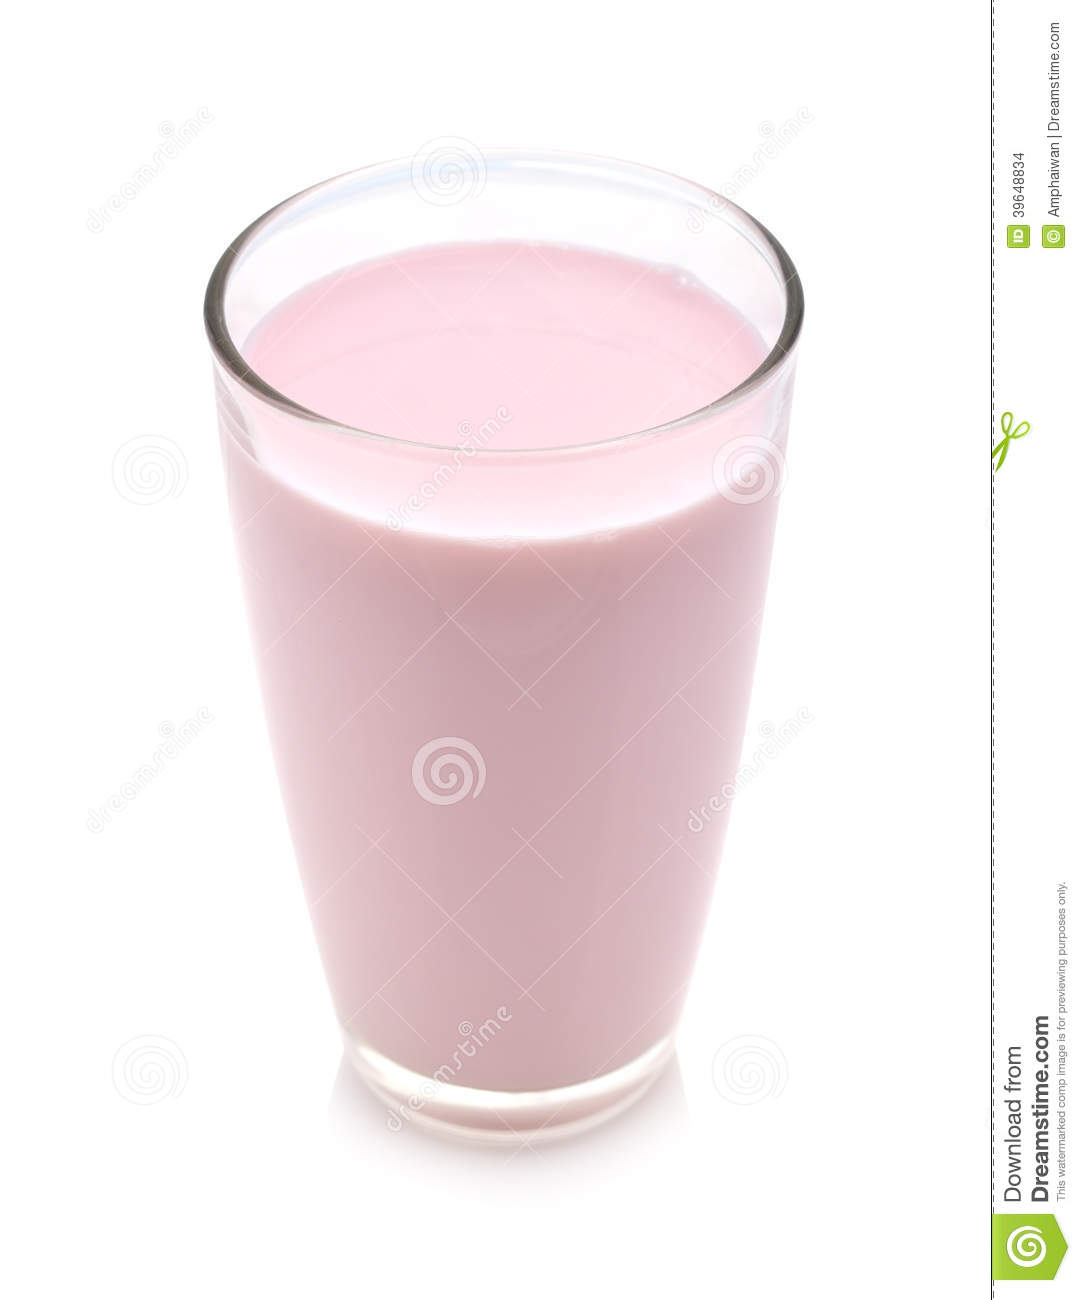 Strawberry Milk Stock Photo - Image: 39648834